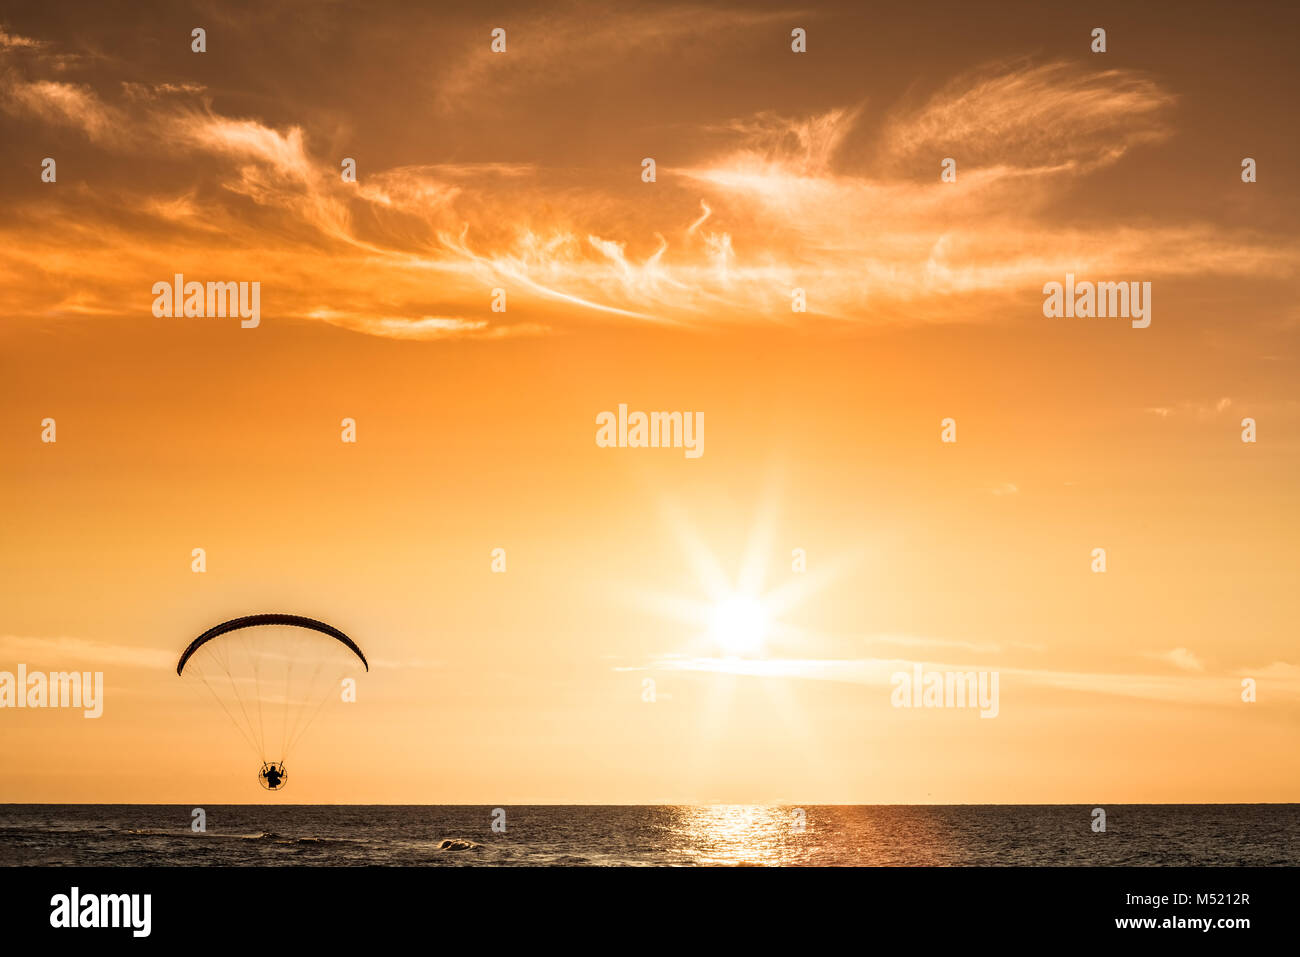 Paraglider flying at sunset - Stock Image